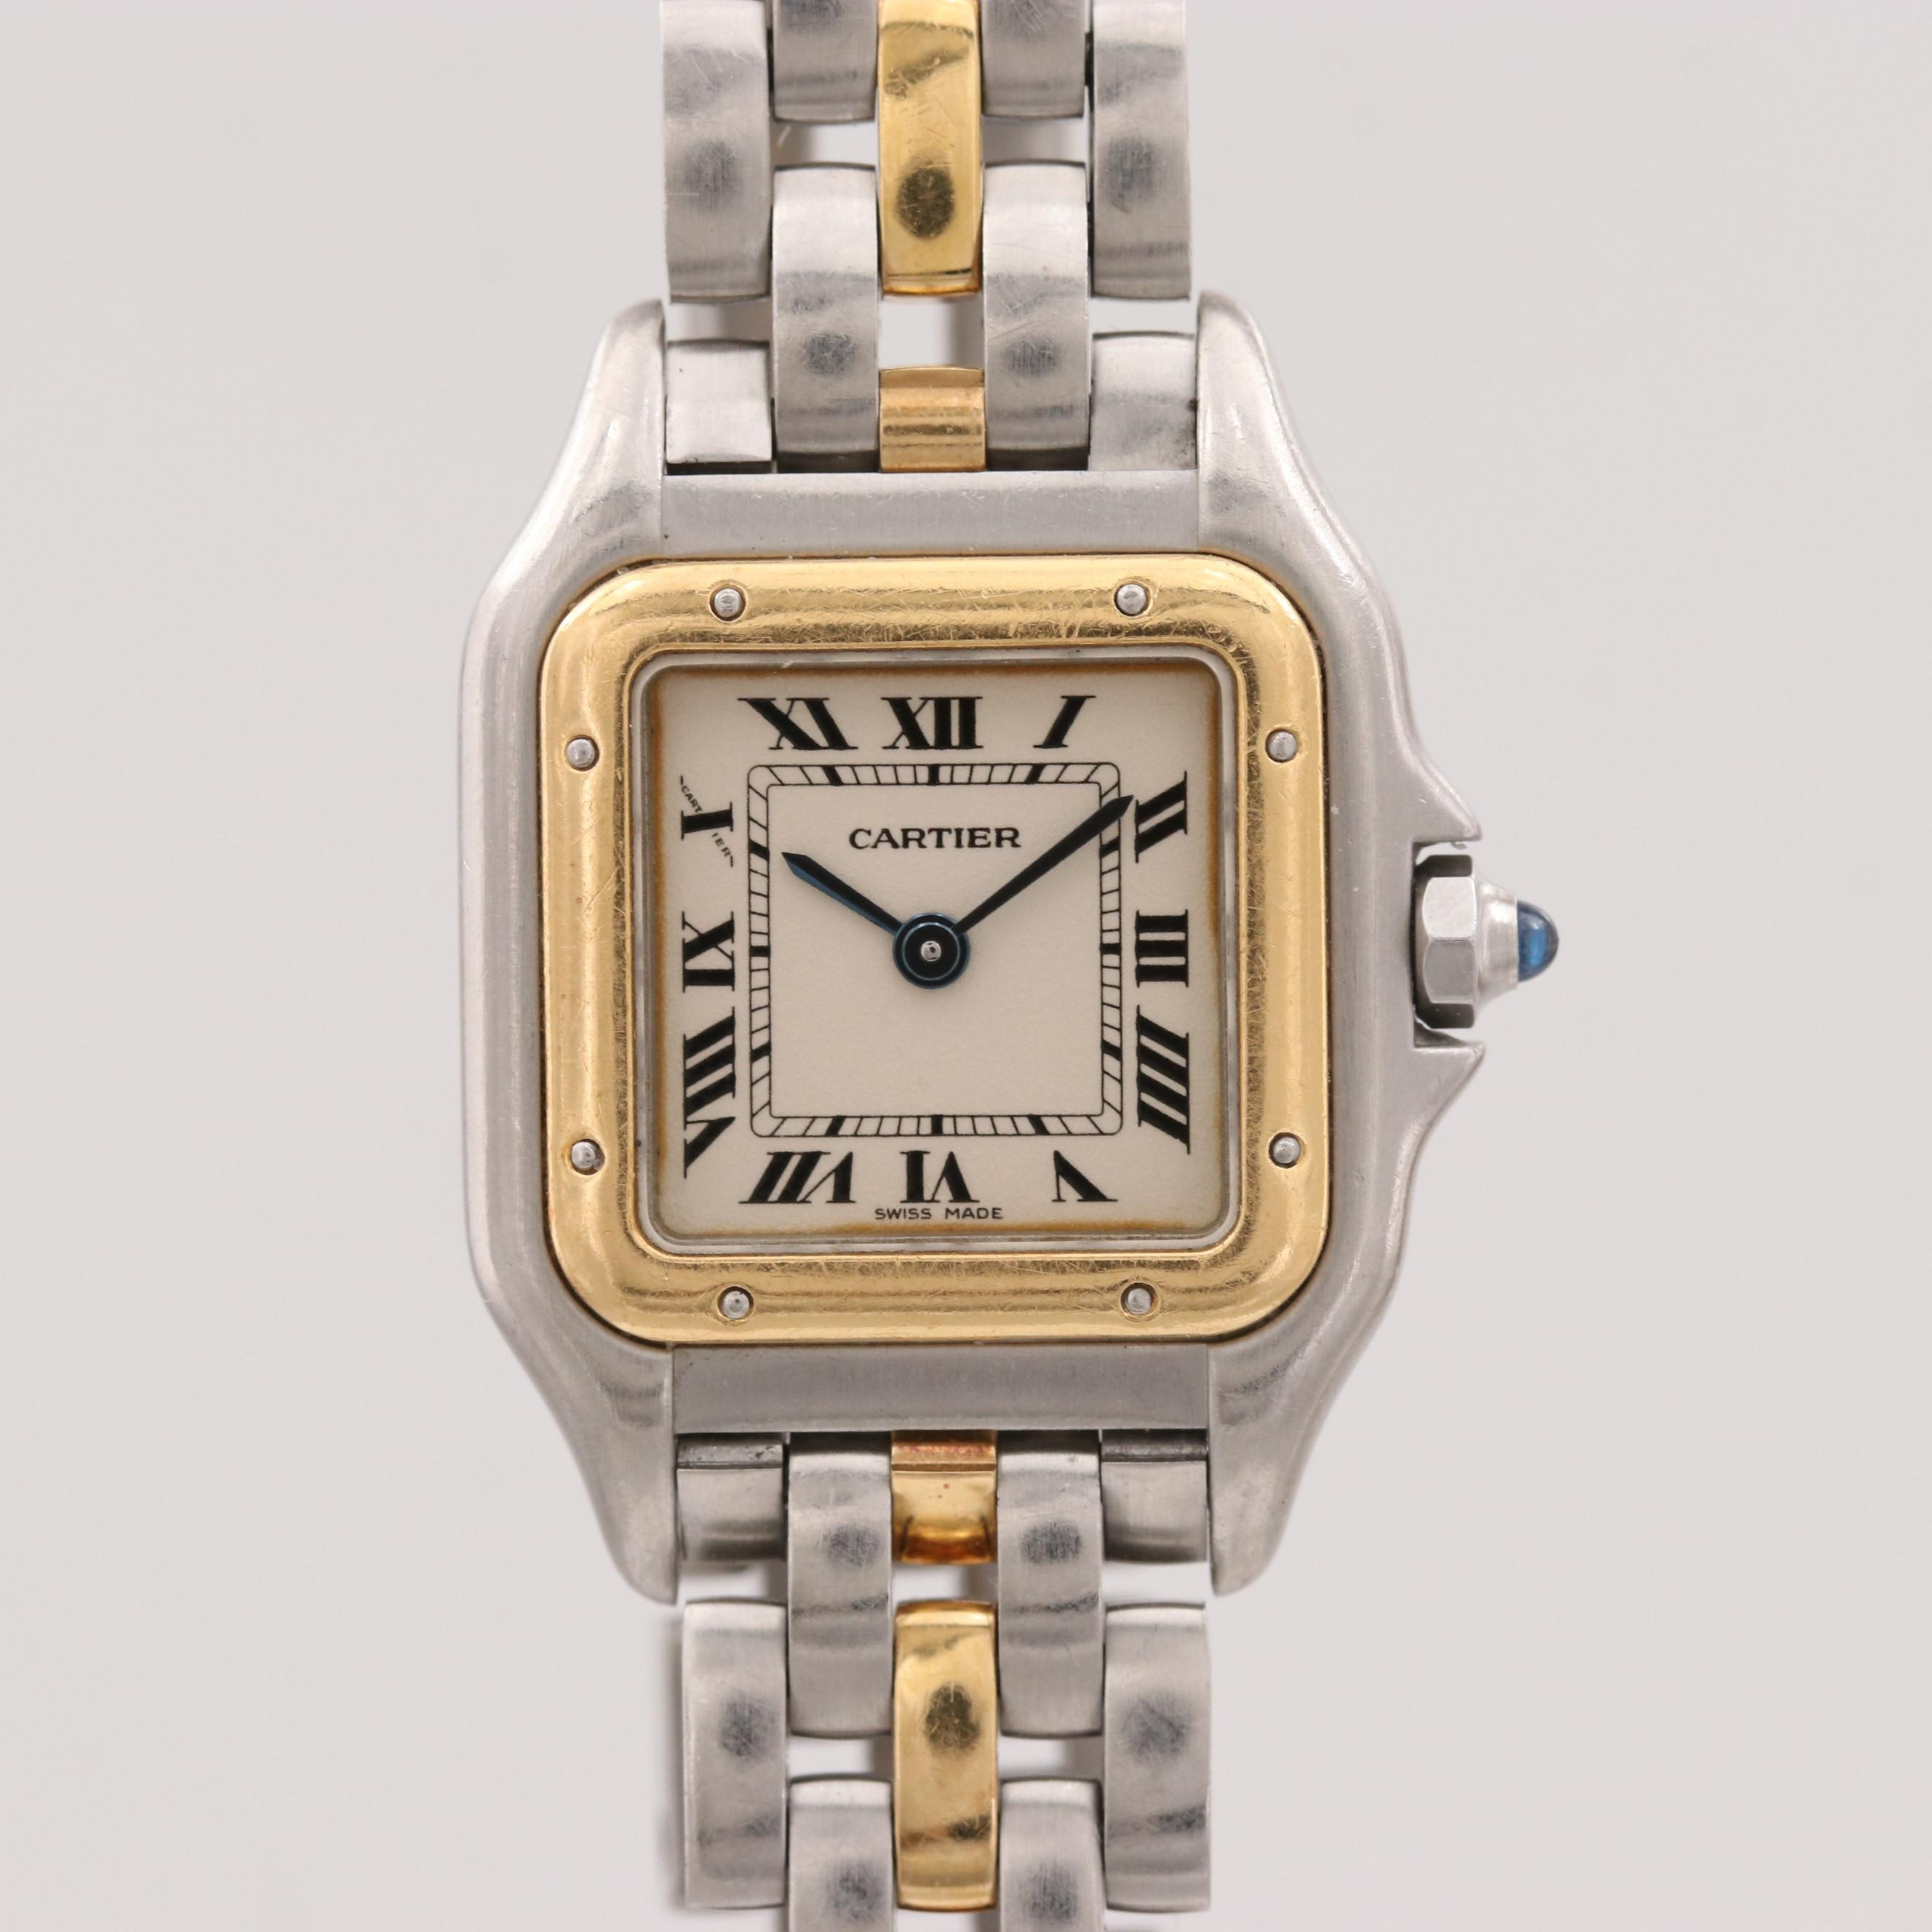 Cartier Panthère Stainless Steel and 18K Yellow Gold Quartz Wristwatch